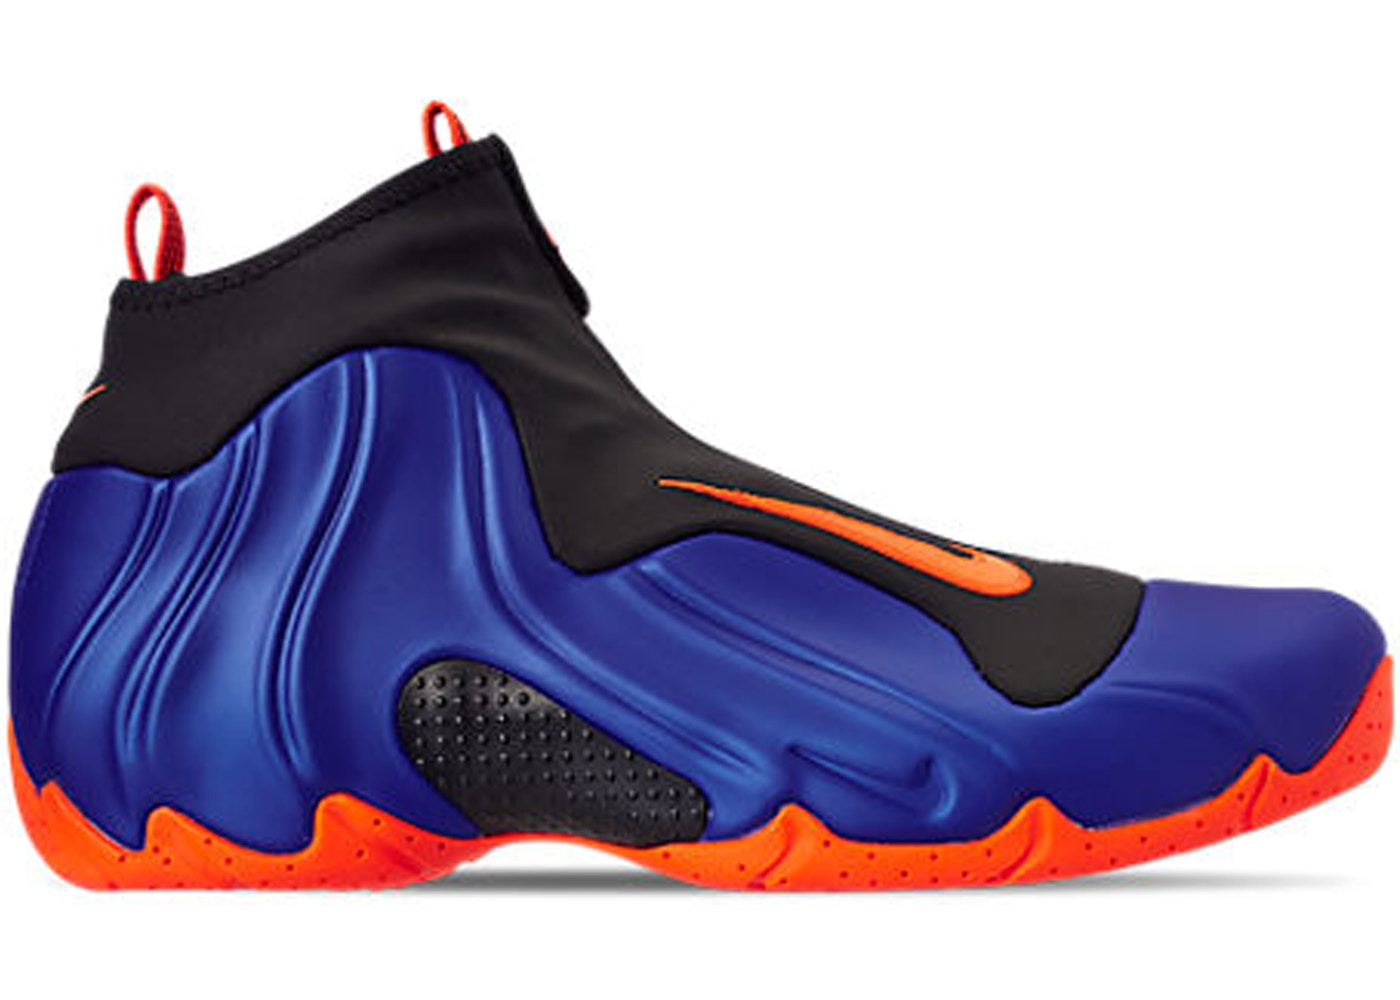 timeless design 2c9a9 95044 Air Flightposite 1 Knicks Away